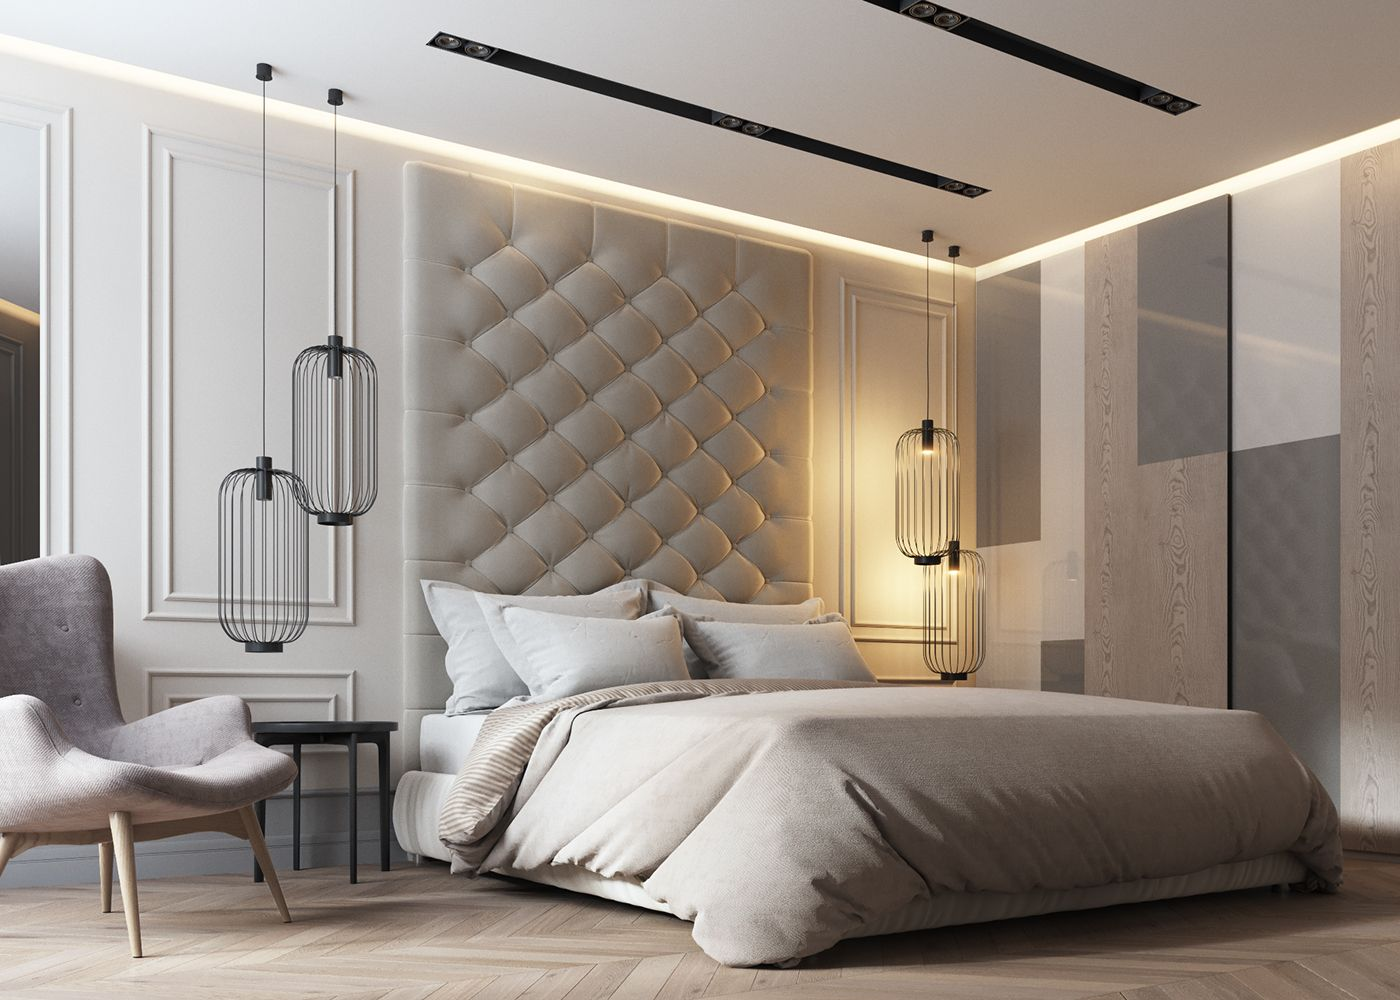 Marvelous Apartments In UkraineDesign: DEu0026DE Interior StudioVisualization: Max  Tiabys, Max Shpak (VizLine Studio. Contemporary Bedroom DesignsModern ...